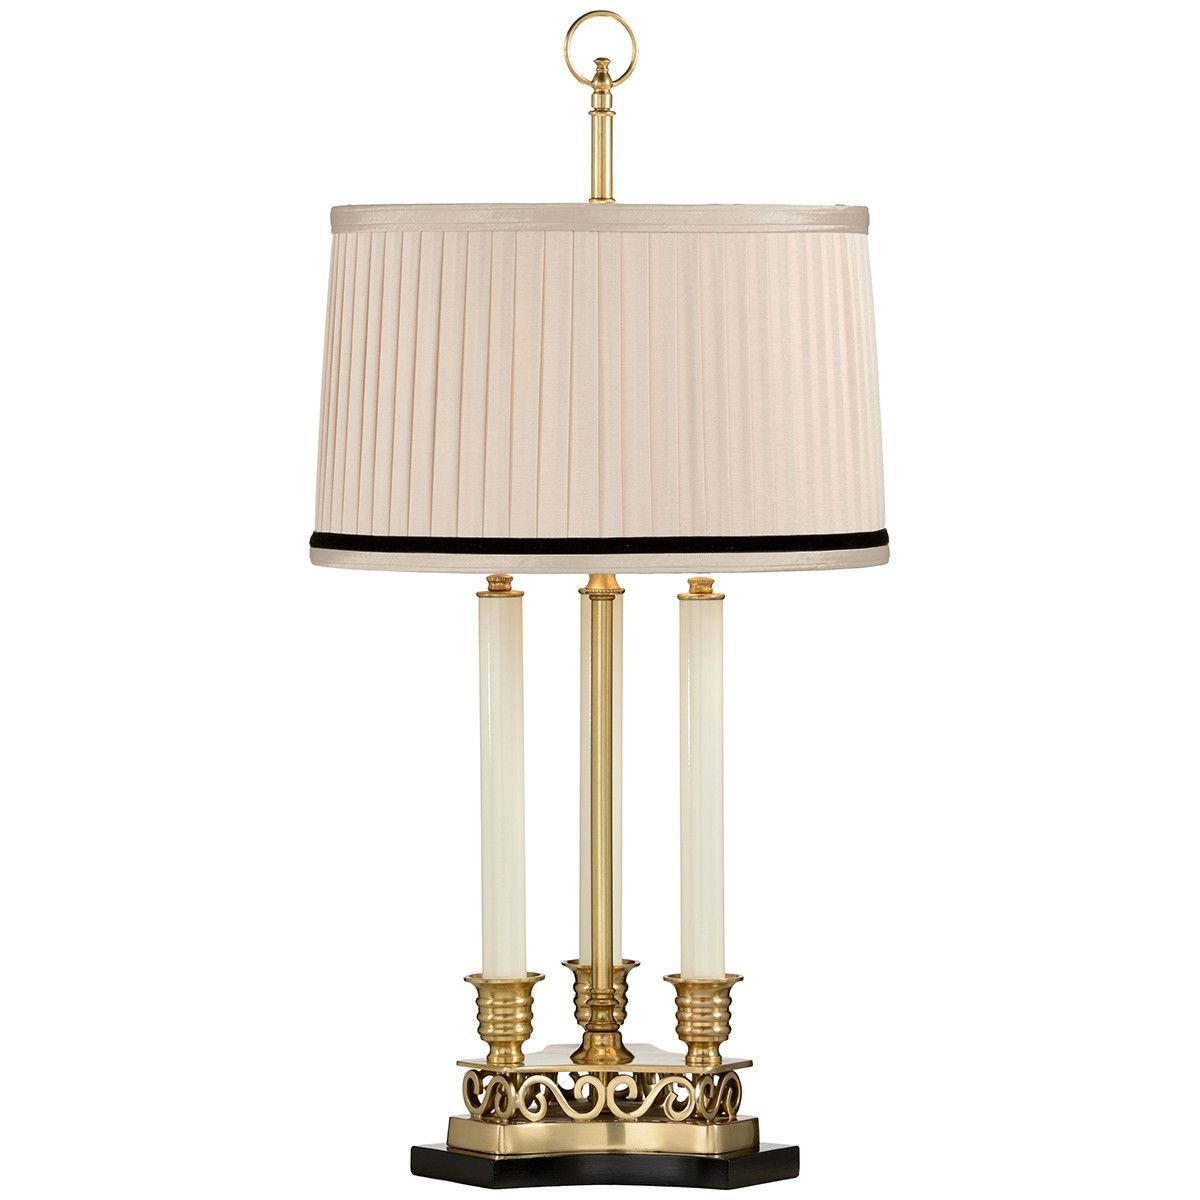 Frederick cooper 9453 thea antique brass table lamp brass table frederick cooper 9453 thea antique brass table lamp geotapseo Image collections